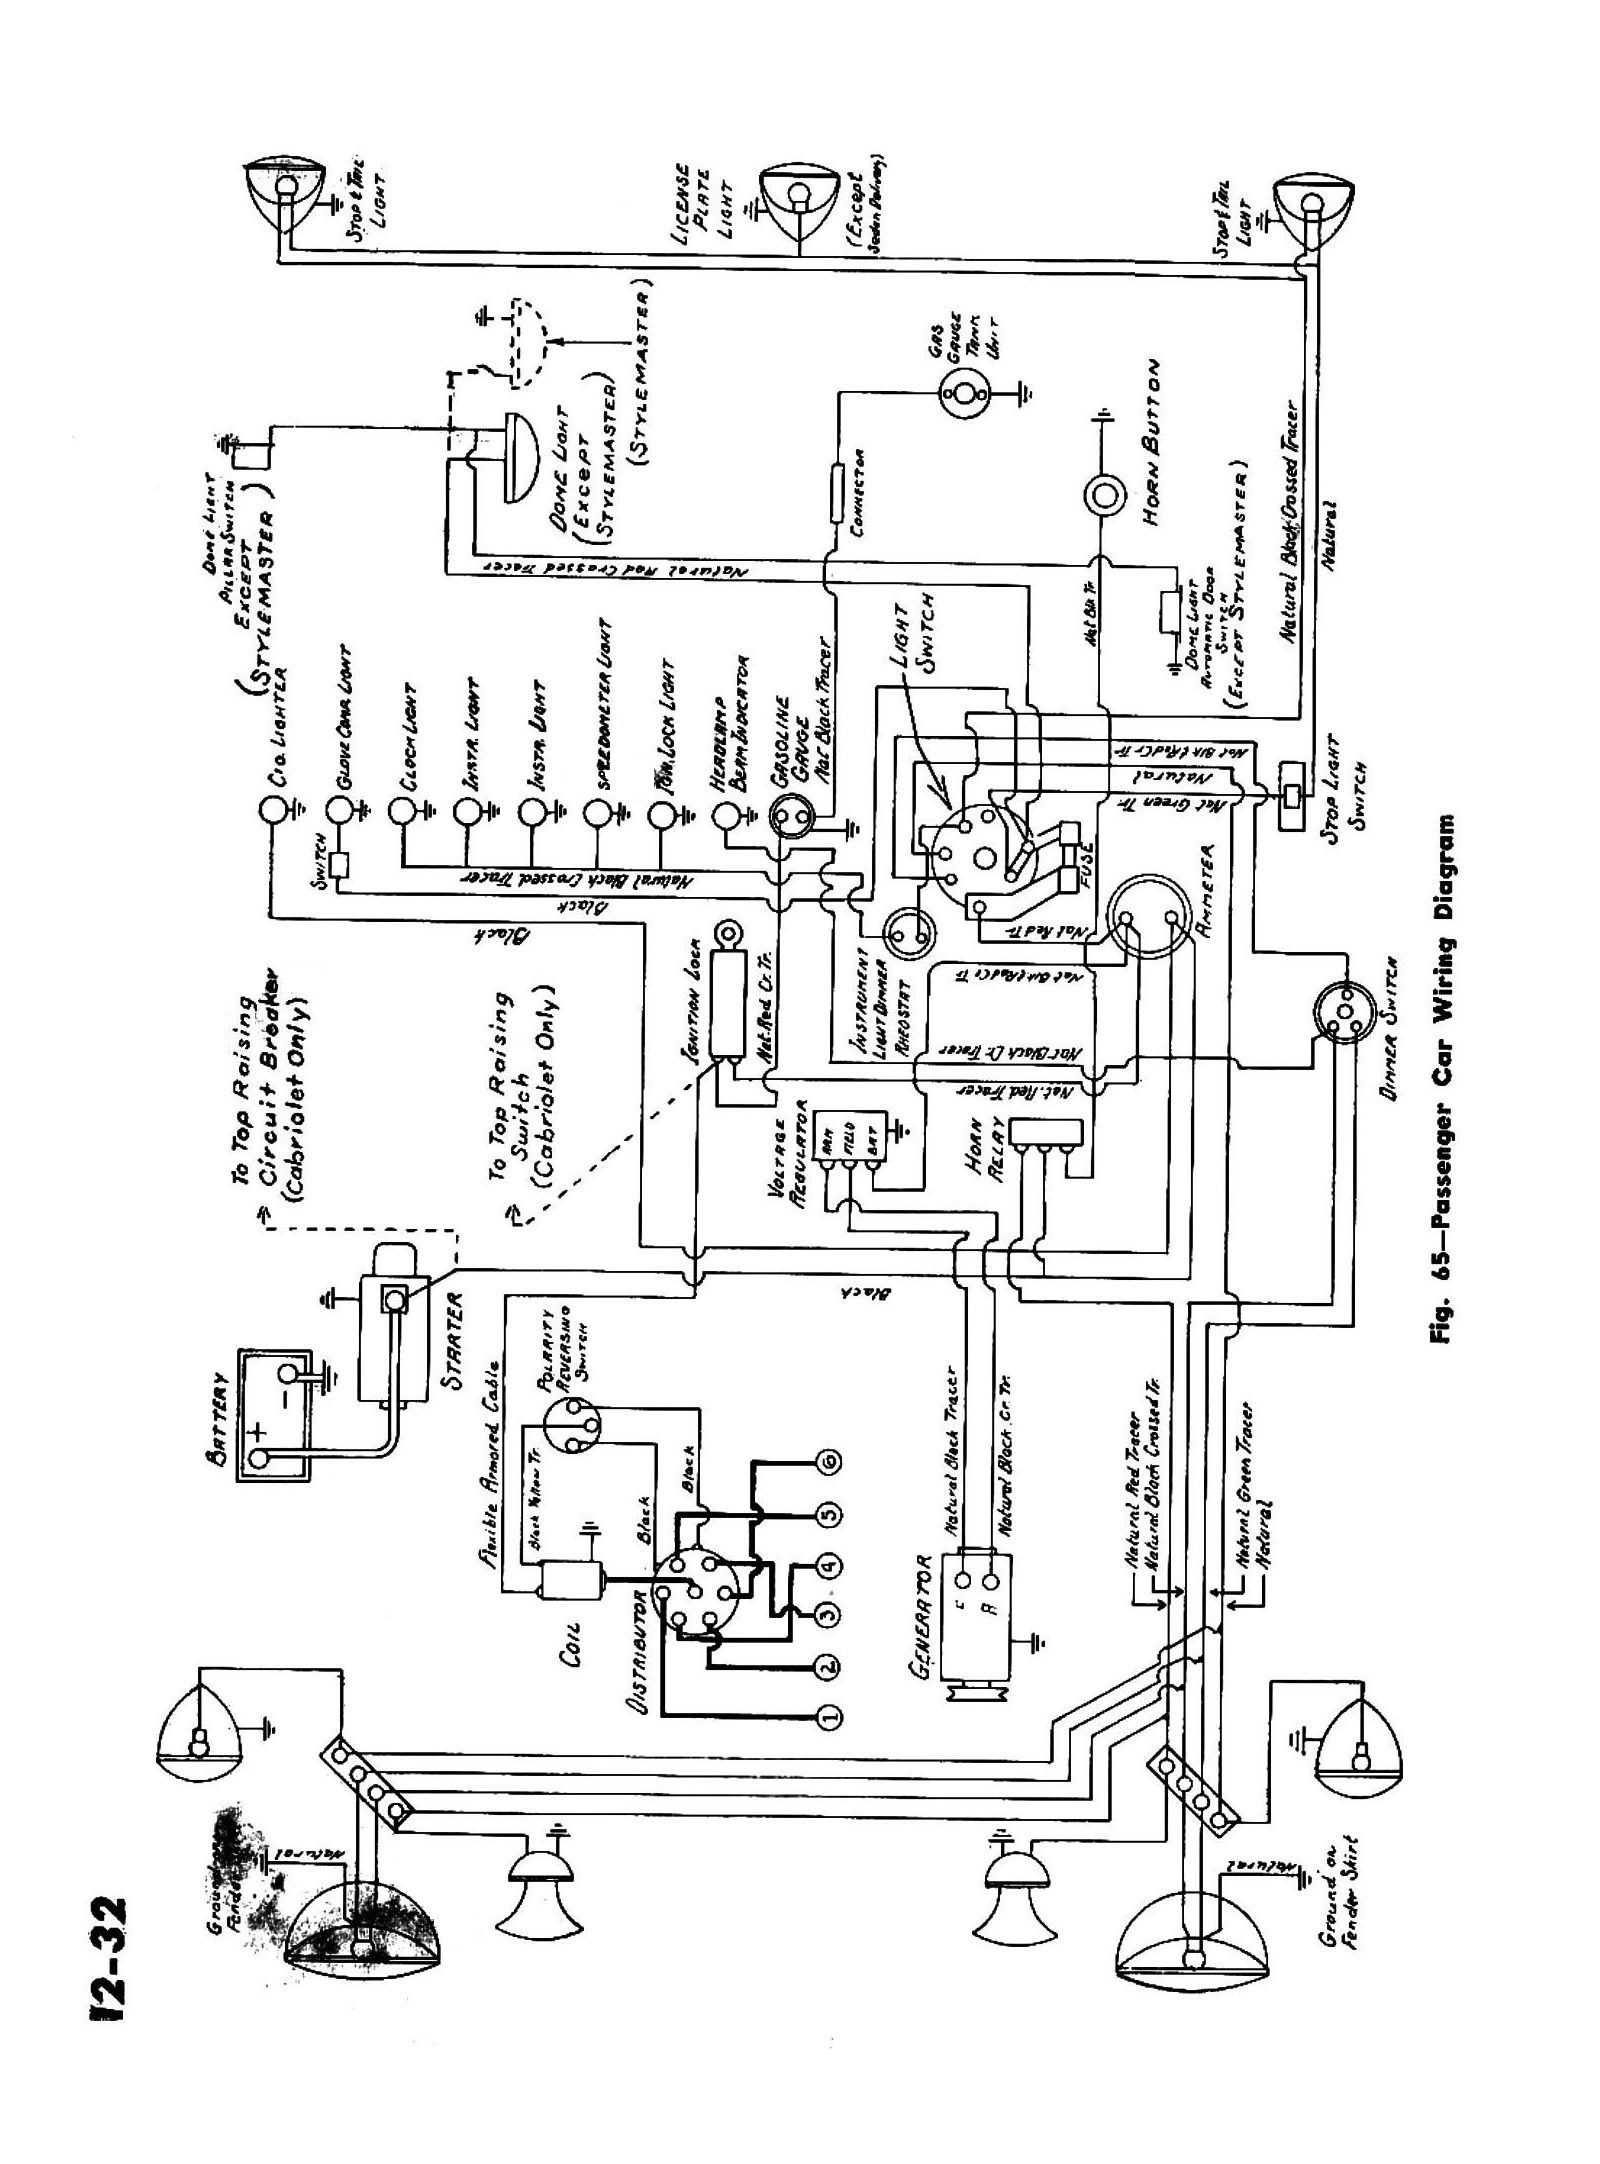 free wiring diagrams for cars 2002 chevy malibu engine diagram best truck images hd wallpaper